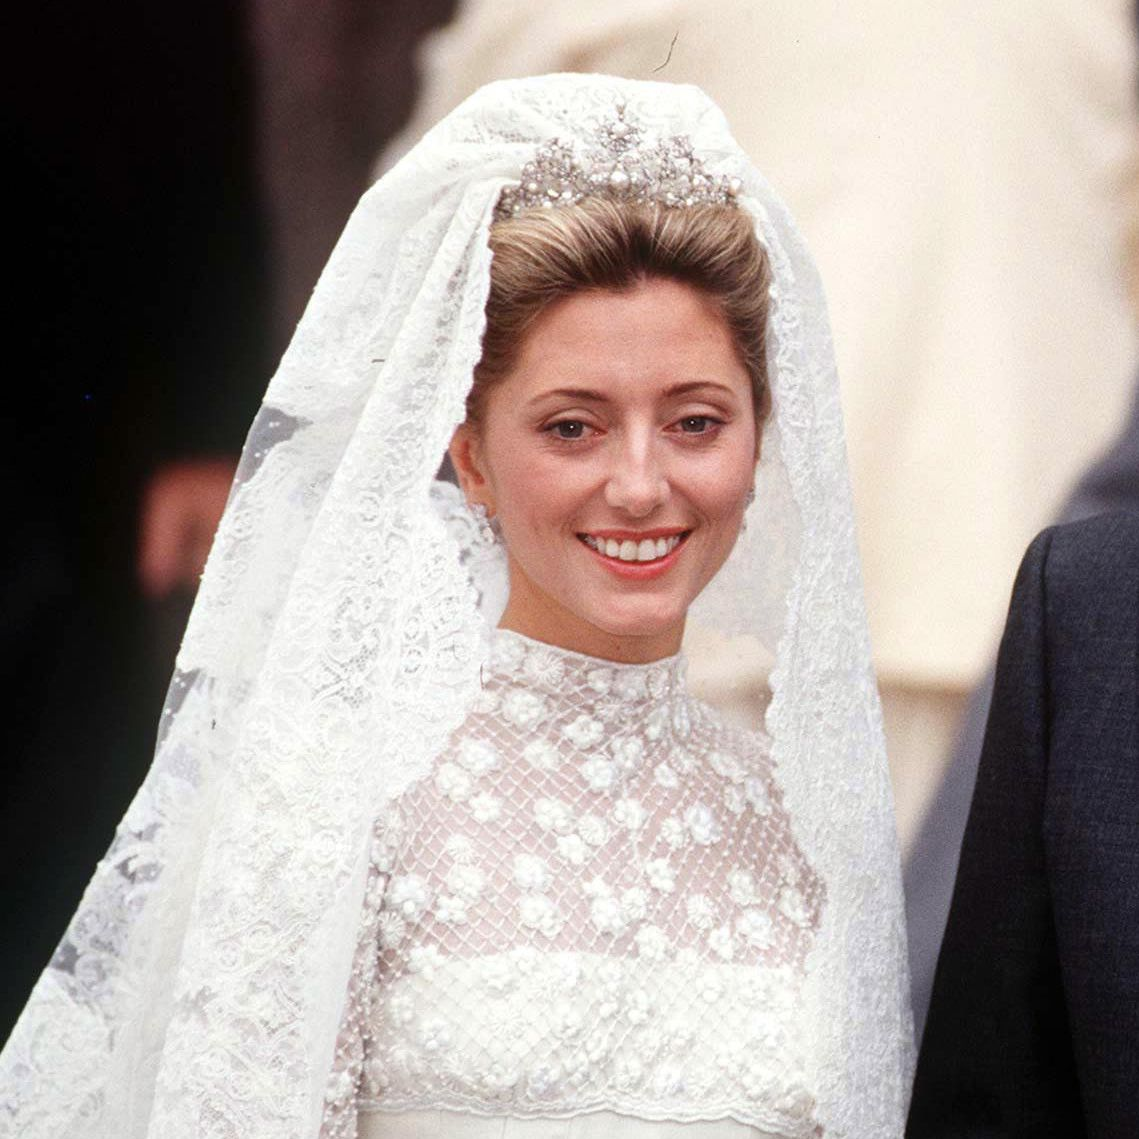 Marie Chantal Miller on her wedding day